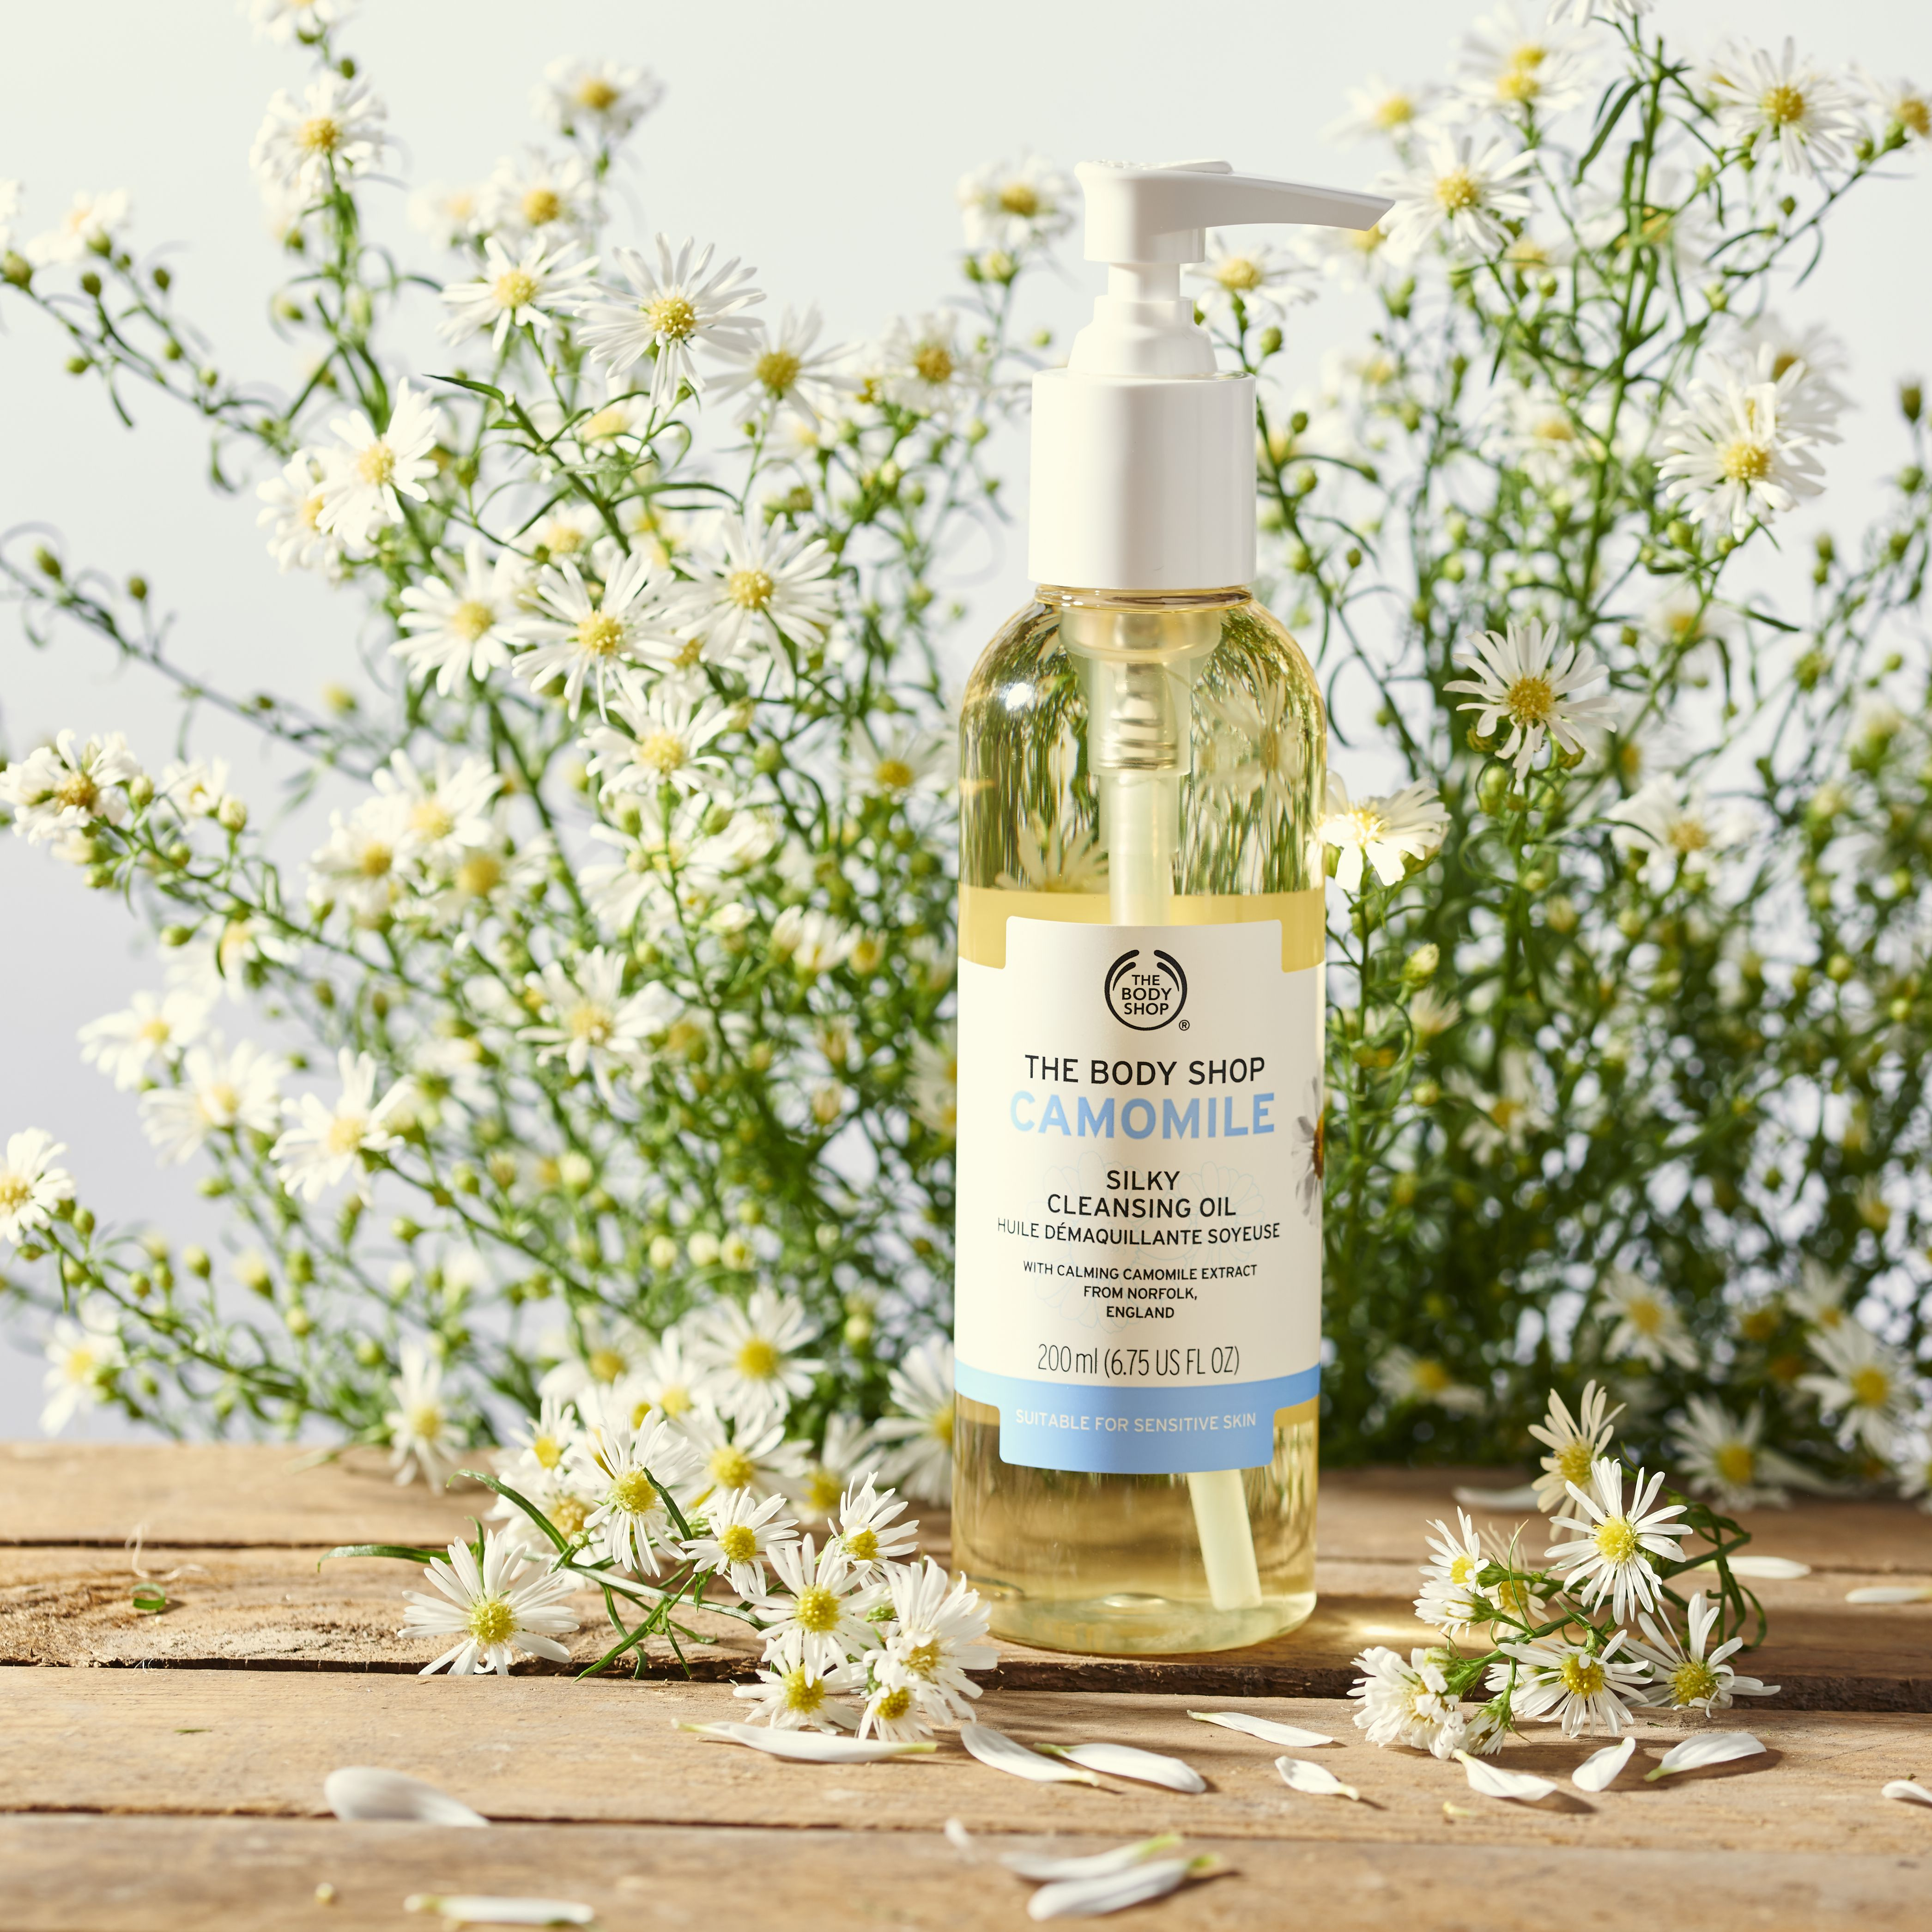 Camomile Silky Cleansing Oil in 2020 Cleansing oil, Body